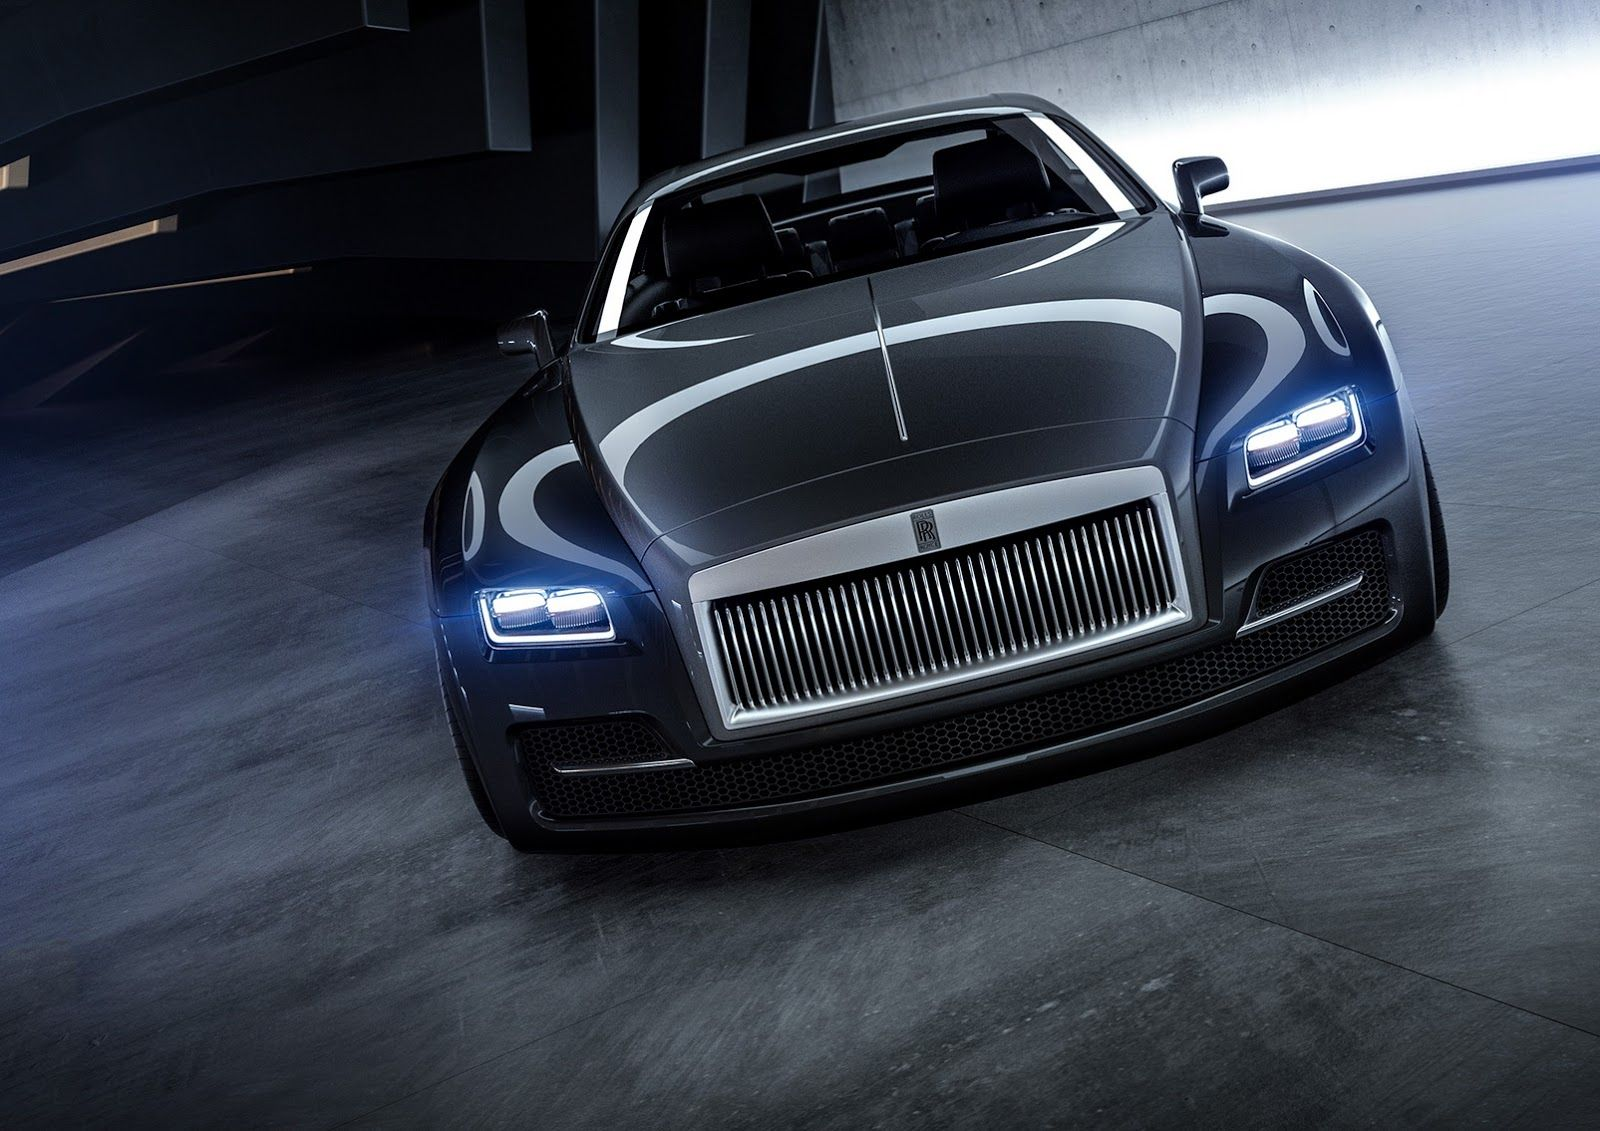 73 New 2020 Rolls Royce Wraith Specs and Review